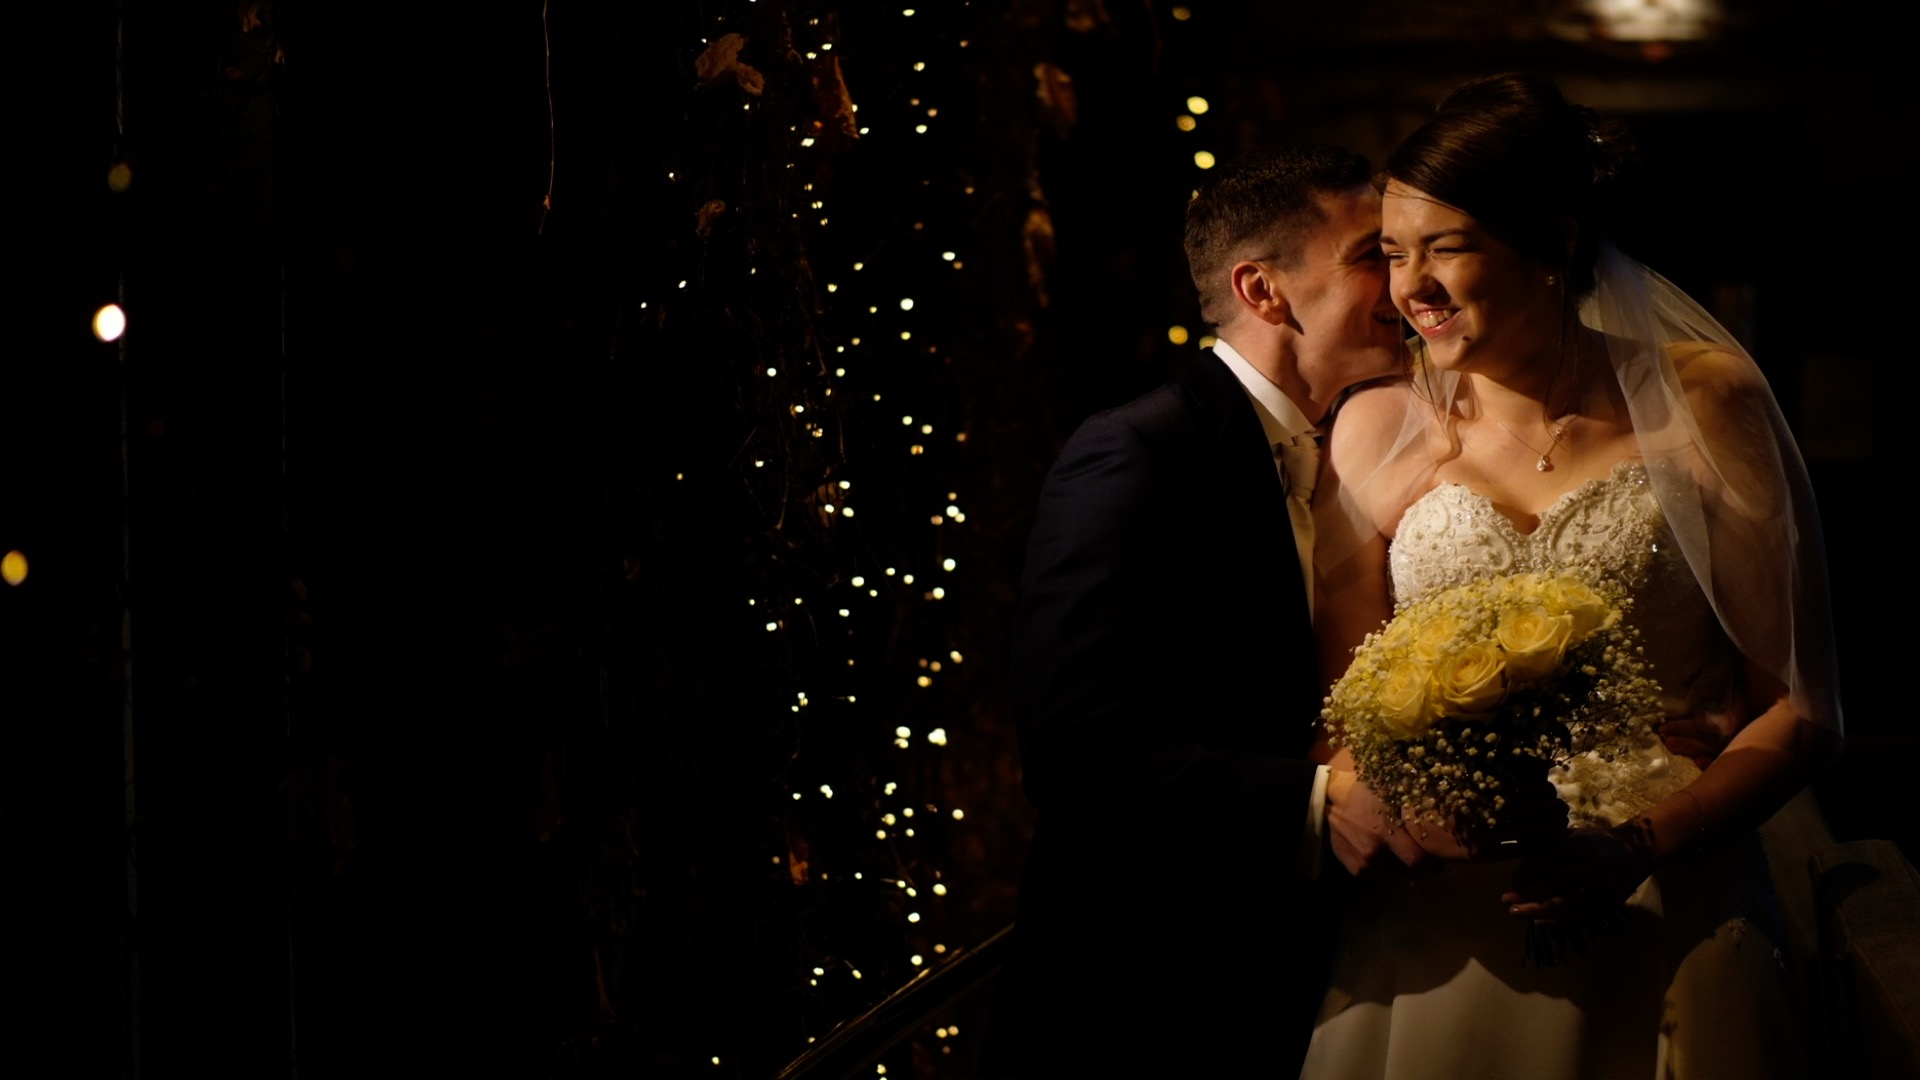 Mark whispers in Fay's ear, causing Fay to burst out in laughter. The couple share a moment in the corridor of Stirk House, which is lit by fairy lights that cascade down the walls.